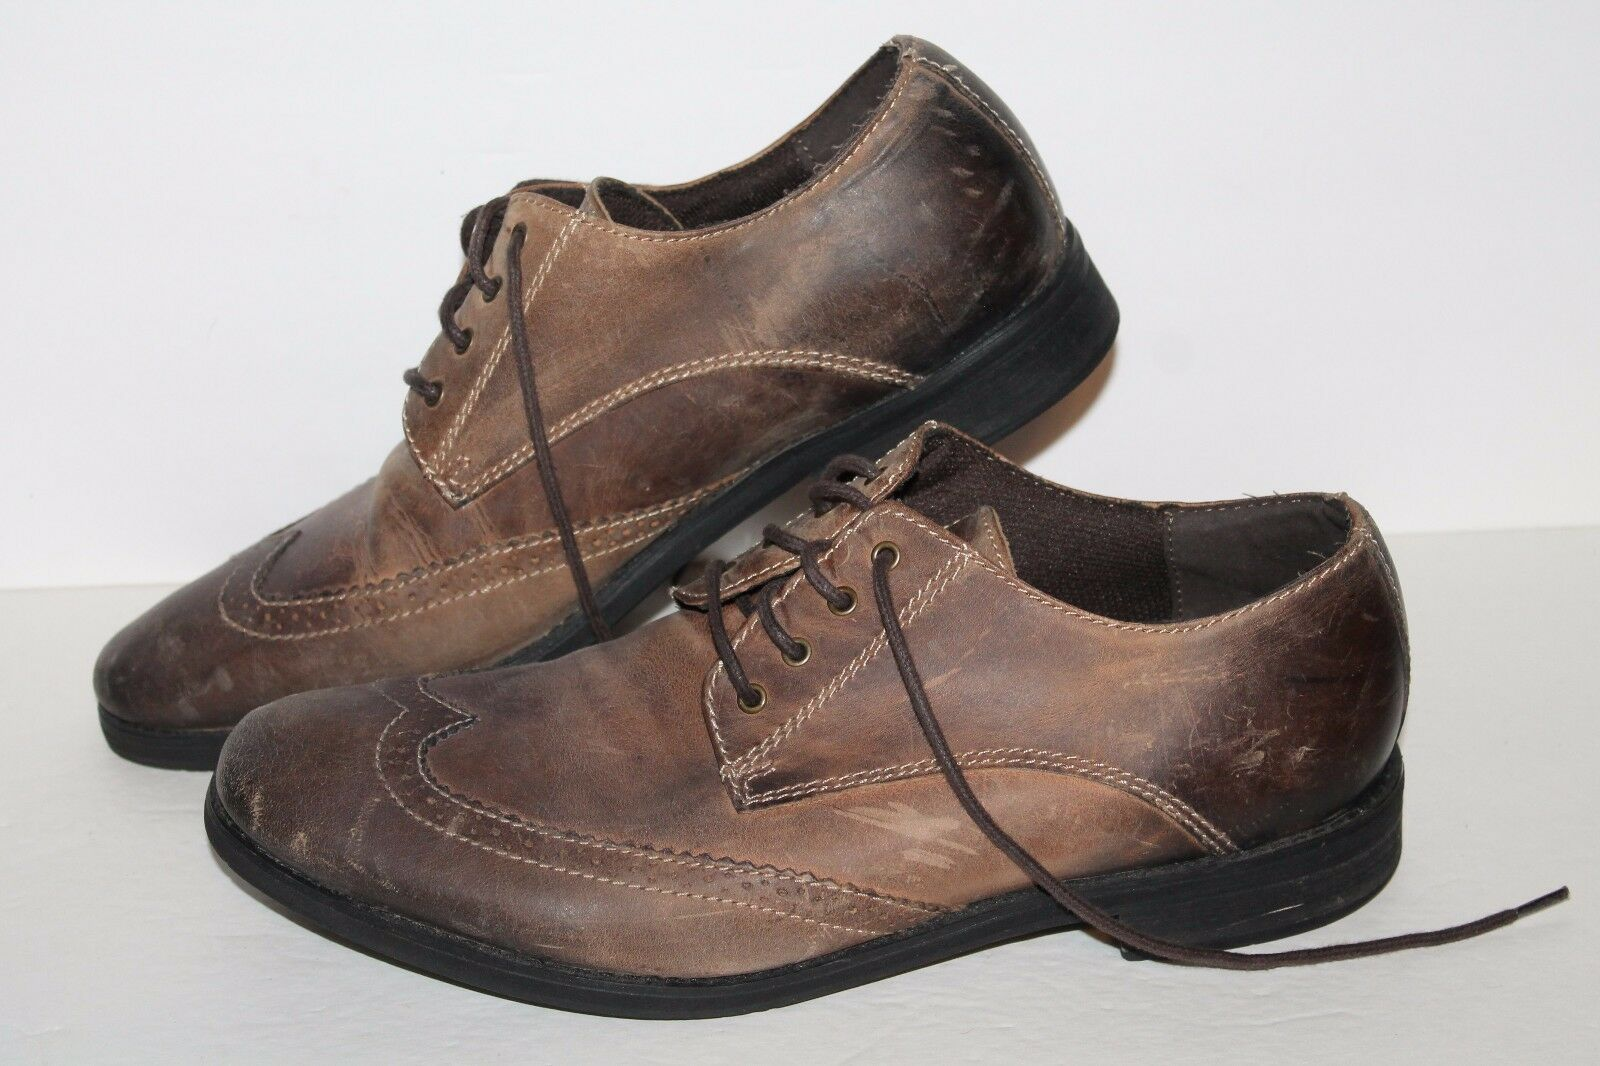 Bed Stü Wingtip Oxfords Casual shoes, Distressed Brown, Leather, Mens US 10.5